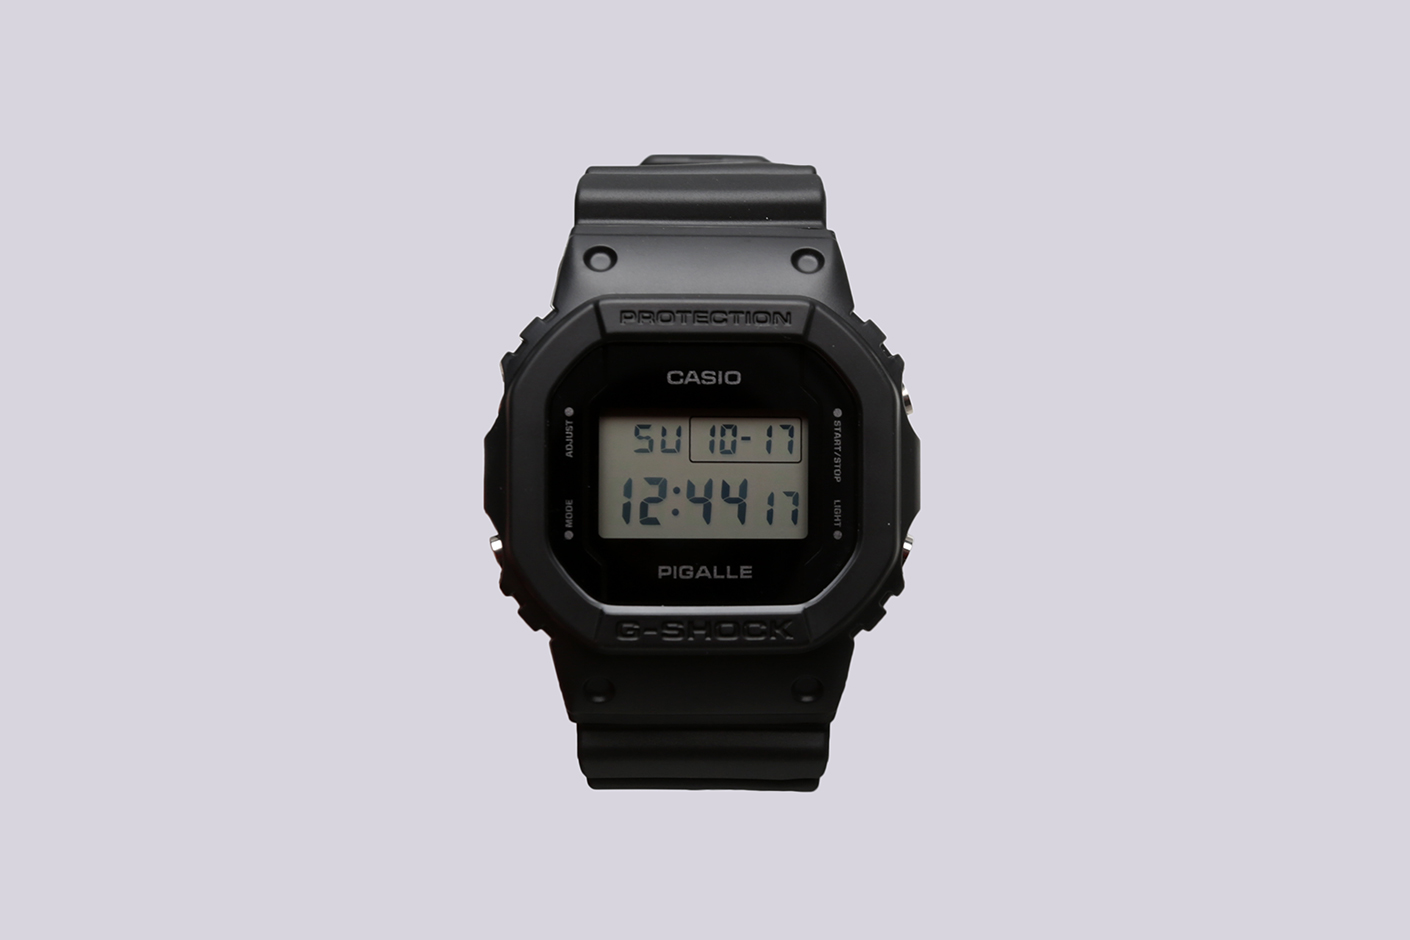 Pigalle resonates with the way g-shock supports street sport culture, and this marks the.